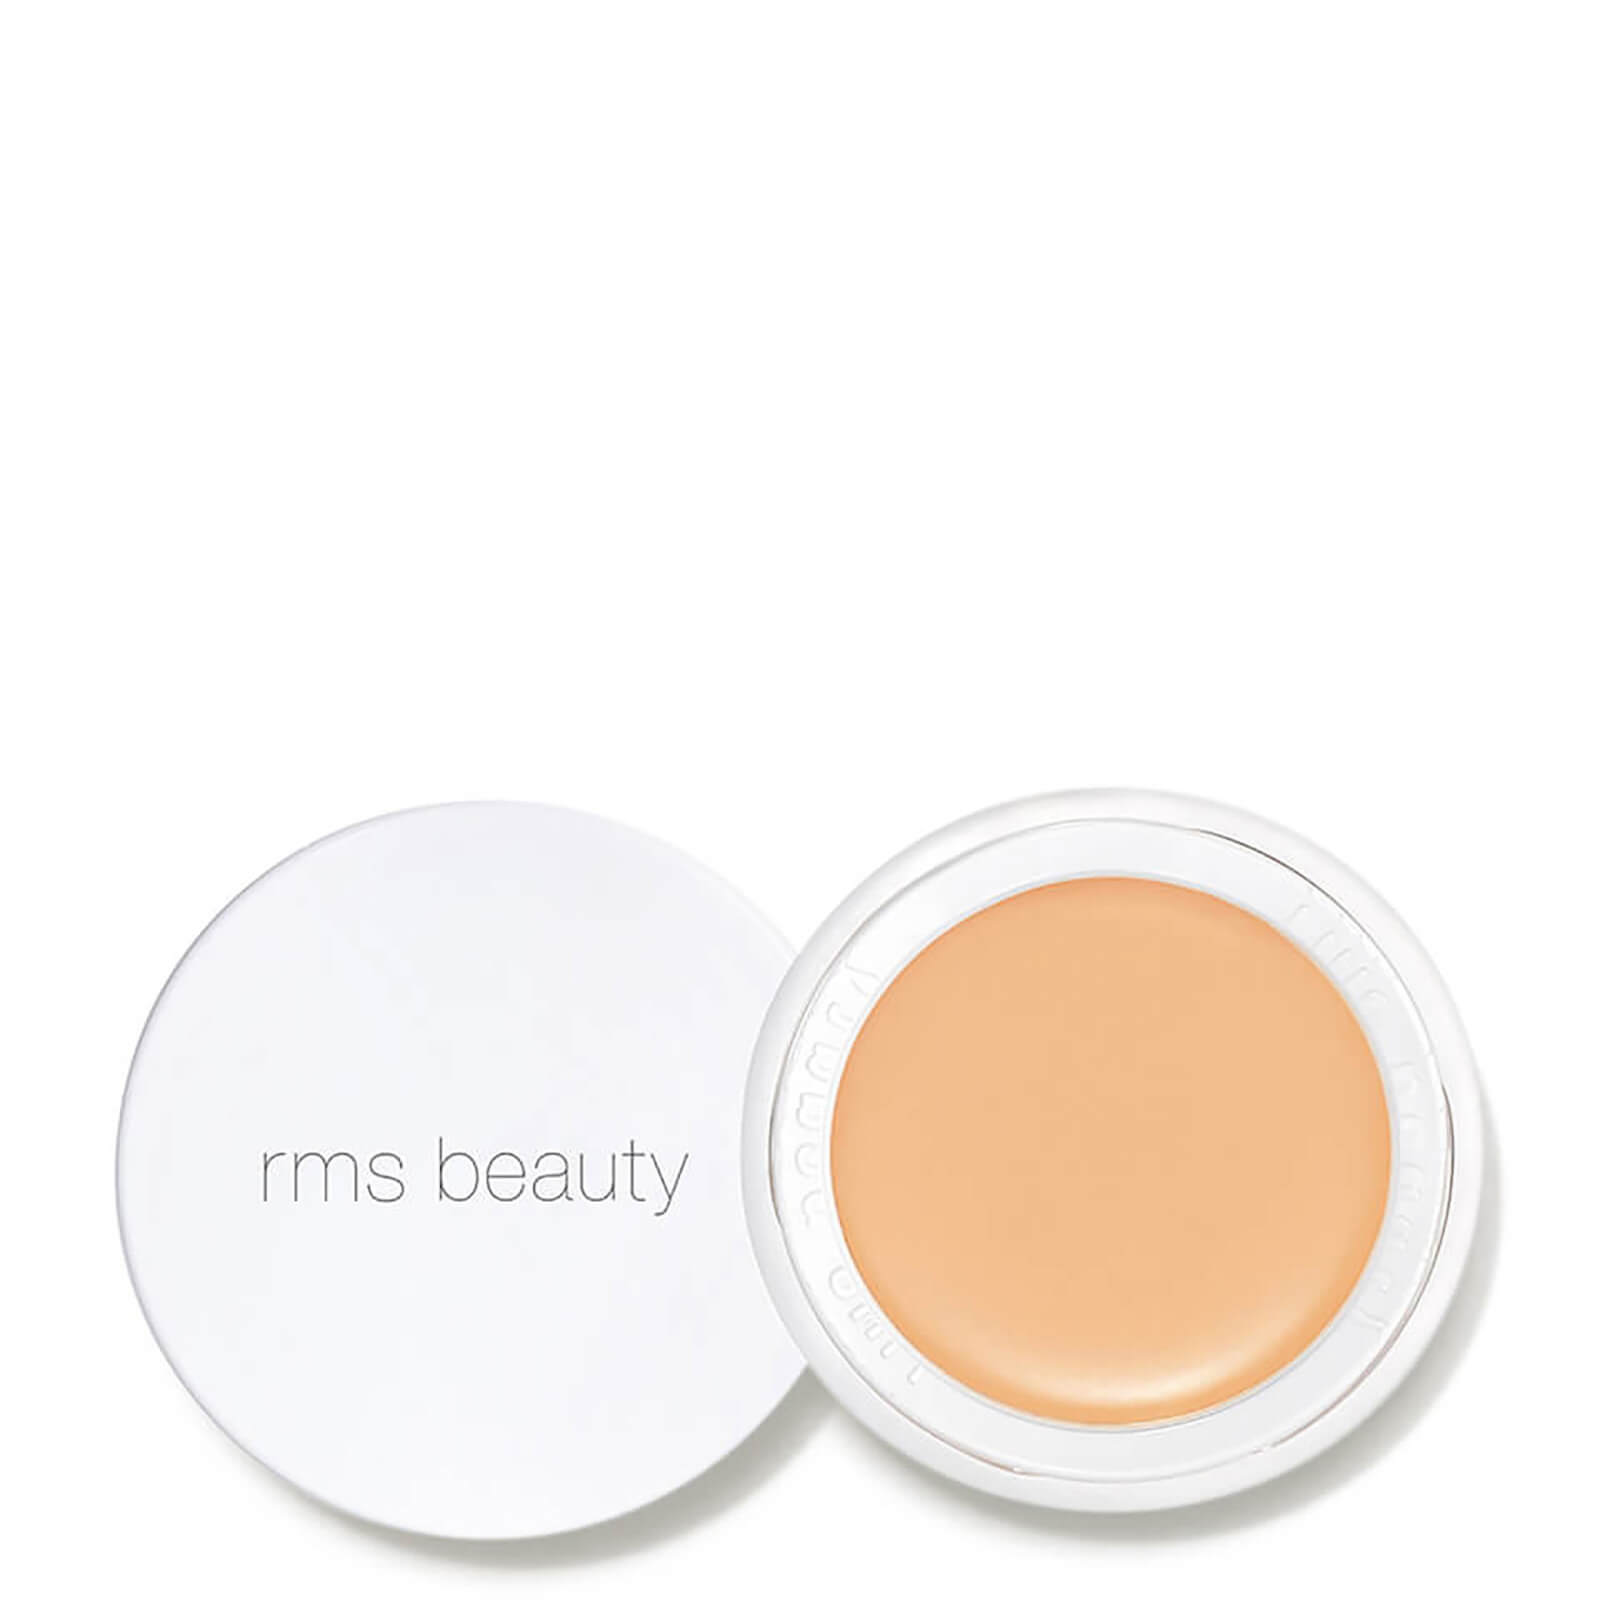 RMS Beauty 'Un' Cover-Up Concealer (Various Shades) - 22